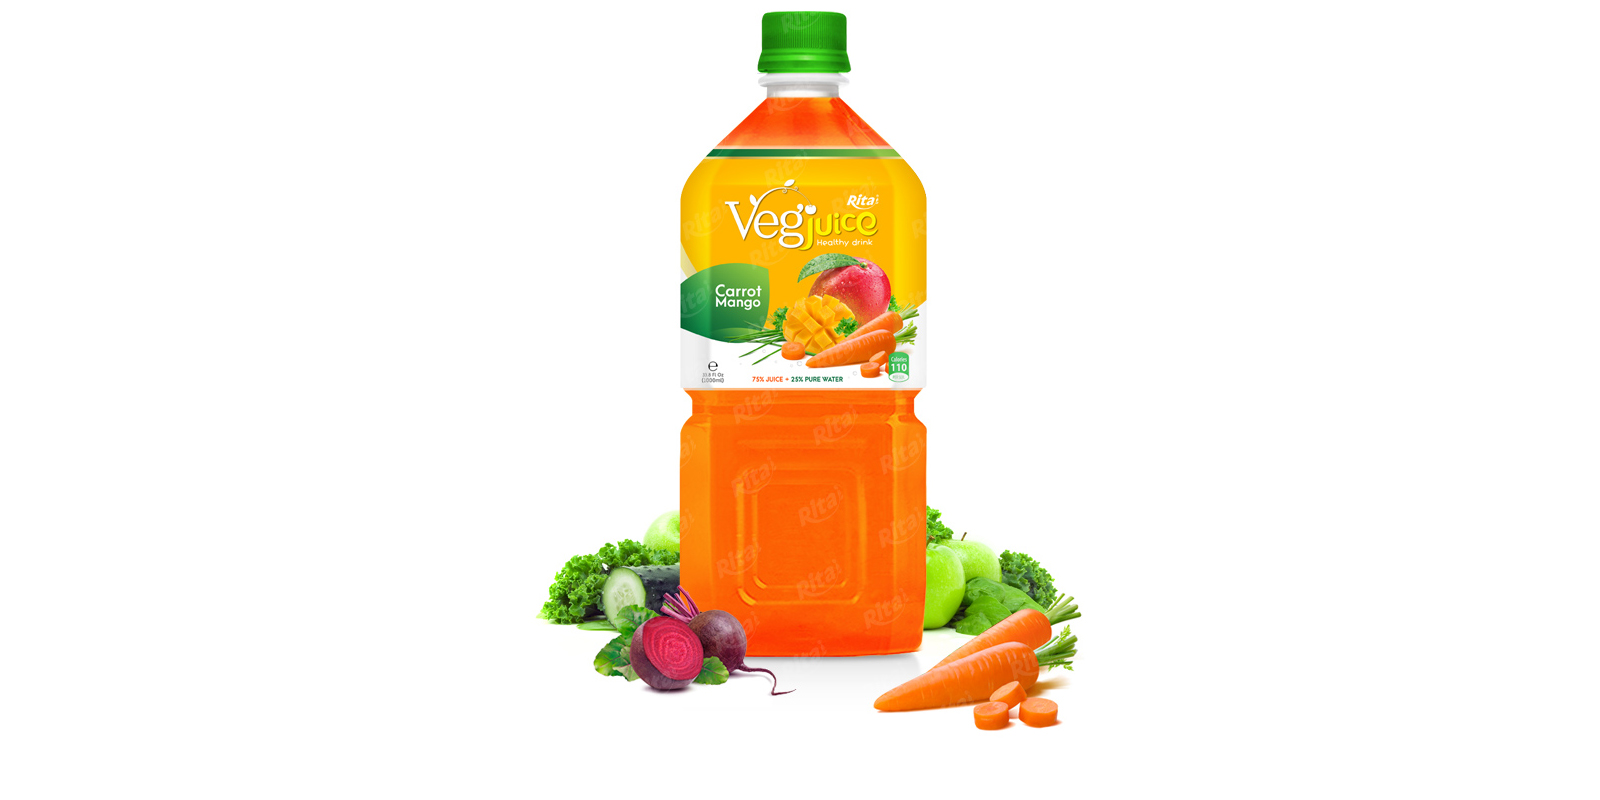 Rita vegetable carot mango 1000ml pet bottle